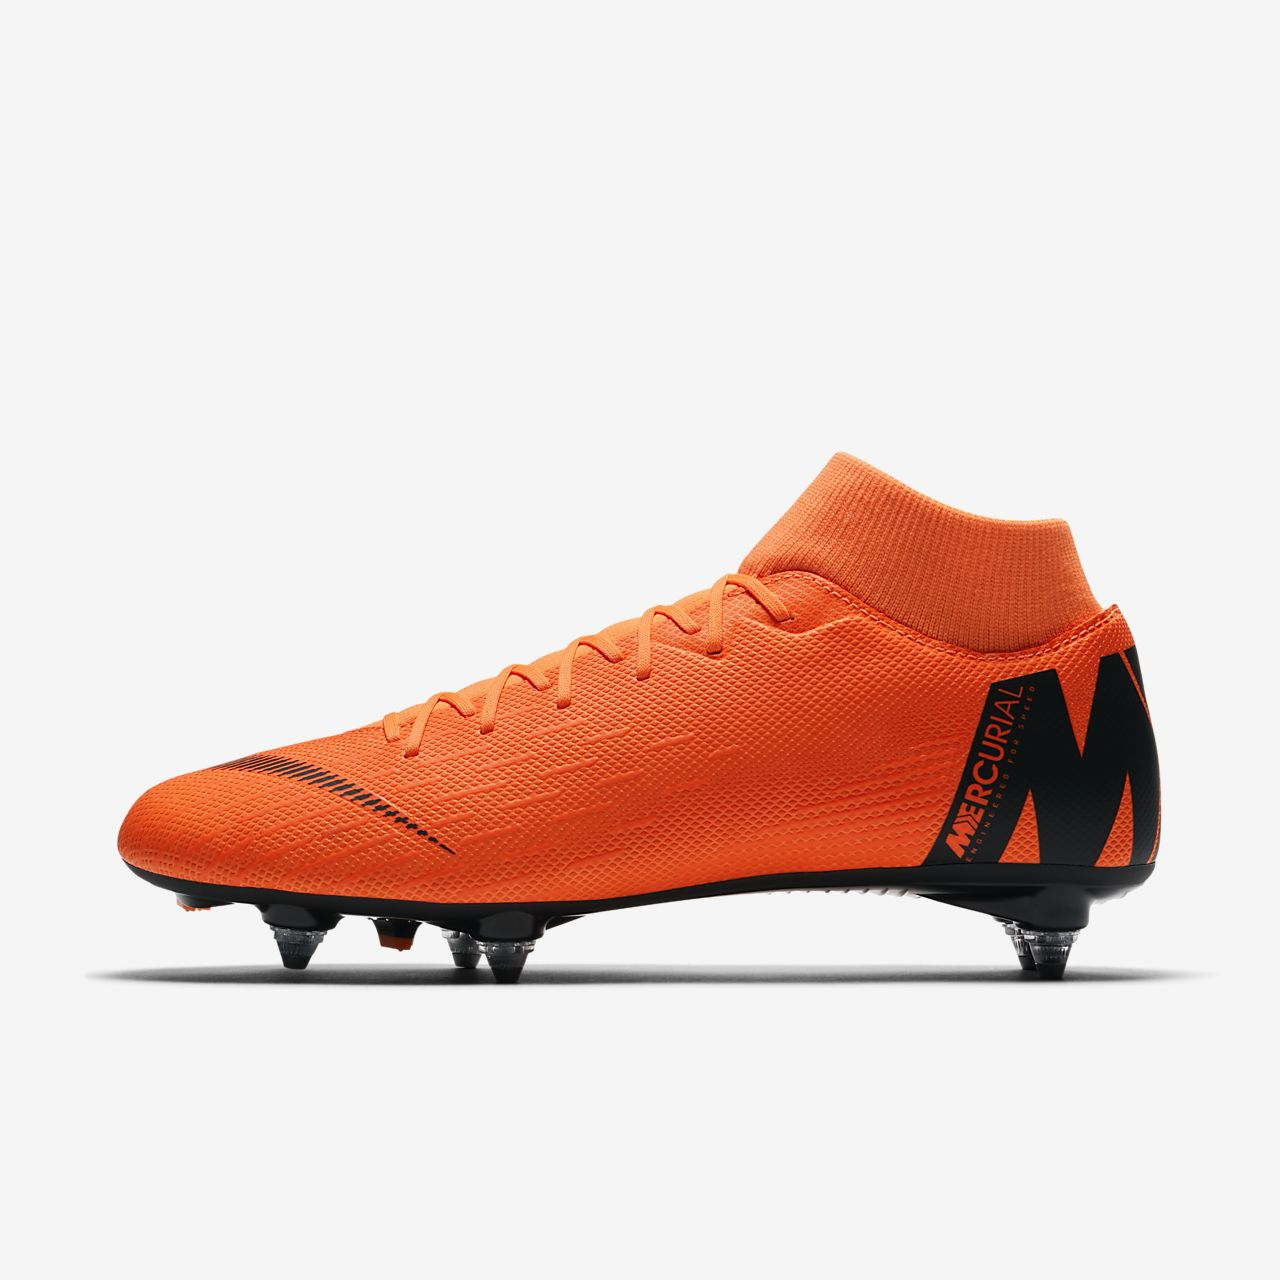 chaussure de football crampons pour terrain gras nike mercurial superfly vi academy sg pro. Black Bedroom Furniture Sets. Home Design Ideas